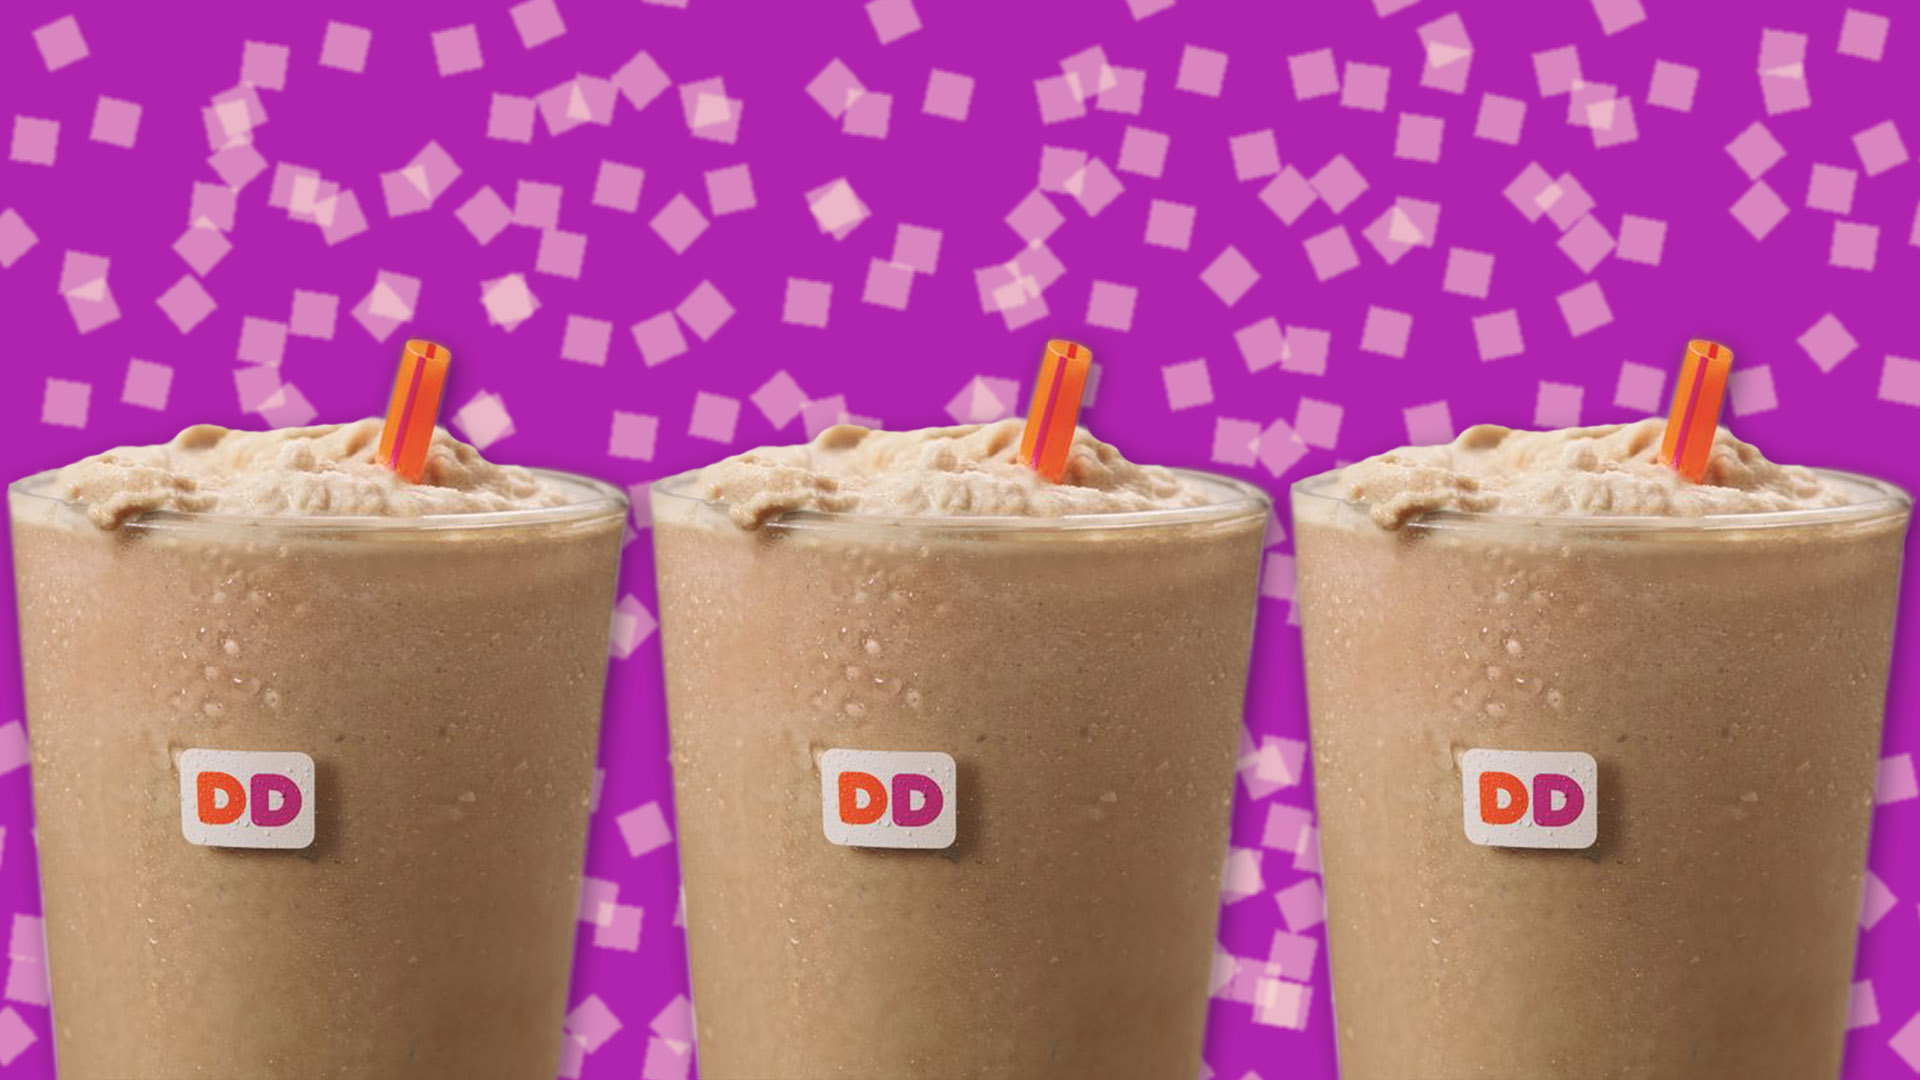 dunkin donuts coffee today 170503 tease 0e23f893bc423c1708d35e7f2fc3f0fc Free Coffee At Dunkin Donuts Today Try Dunkin Donuts New Frozen Coffee For Free Friday